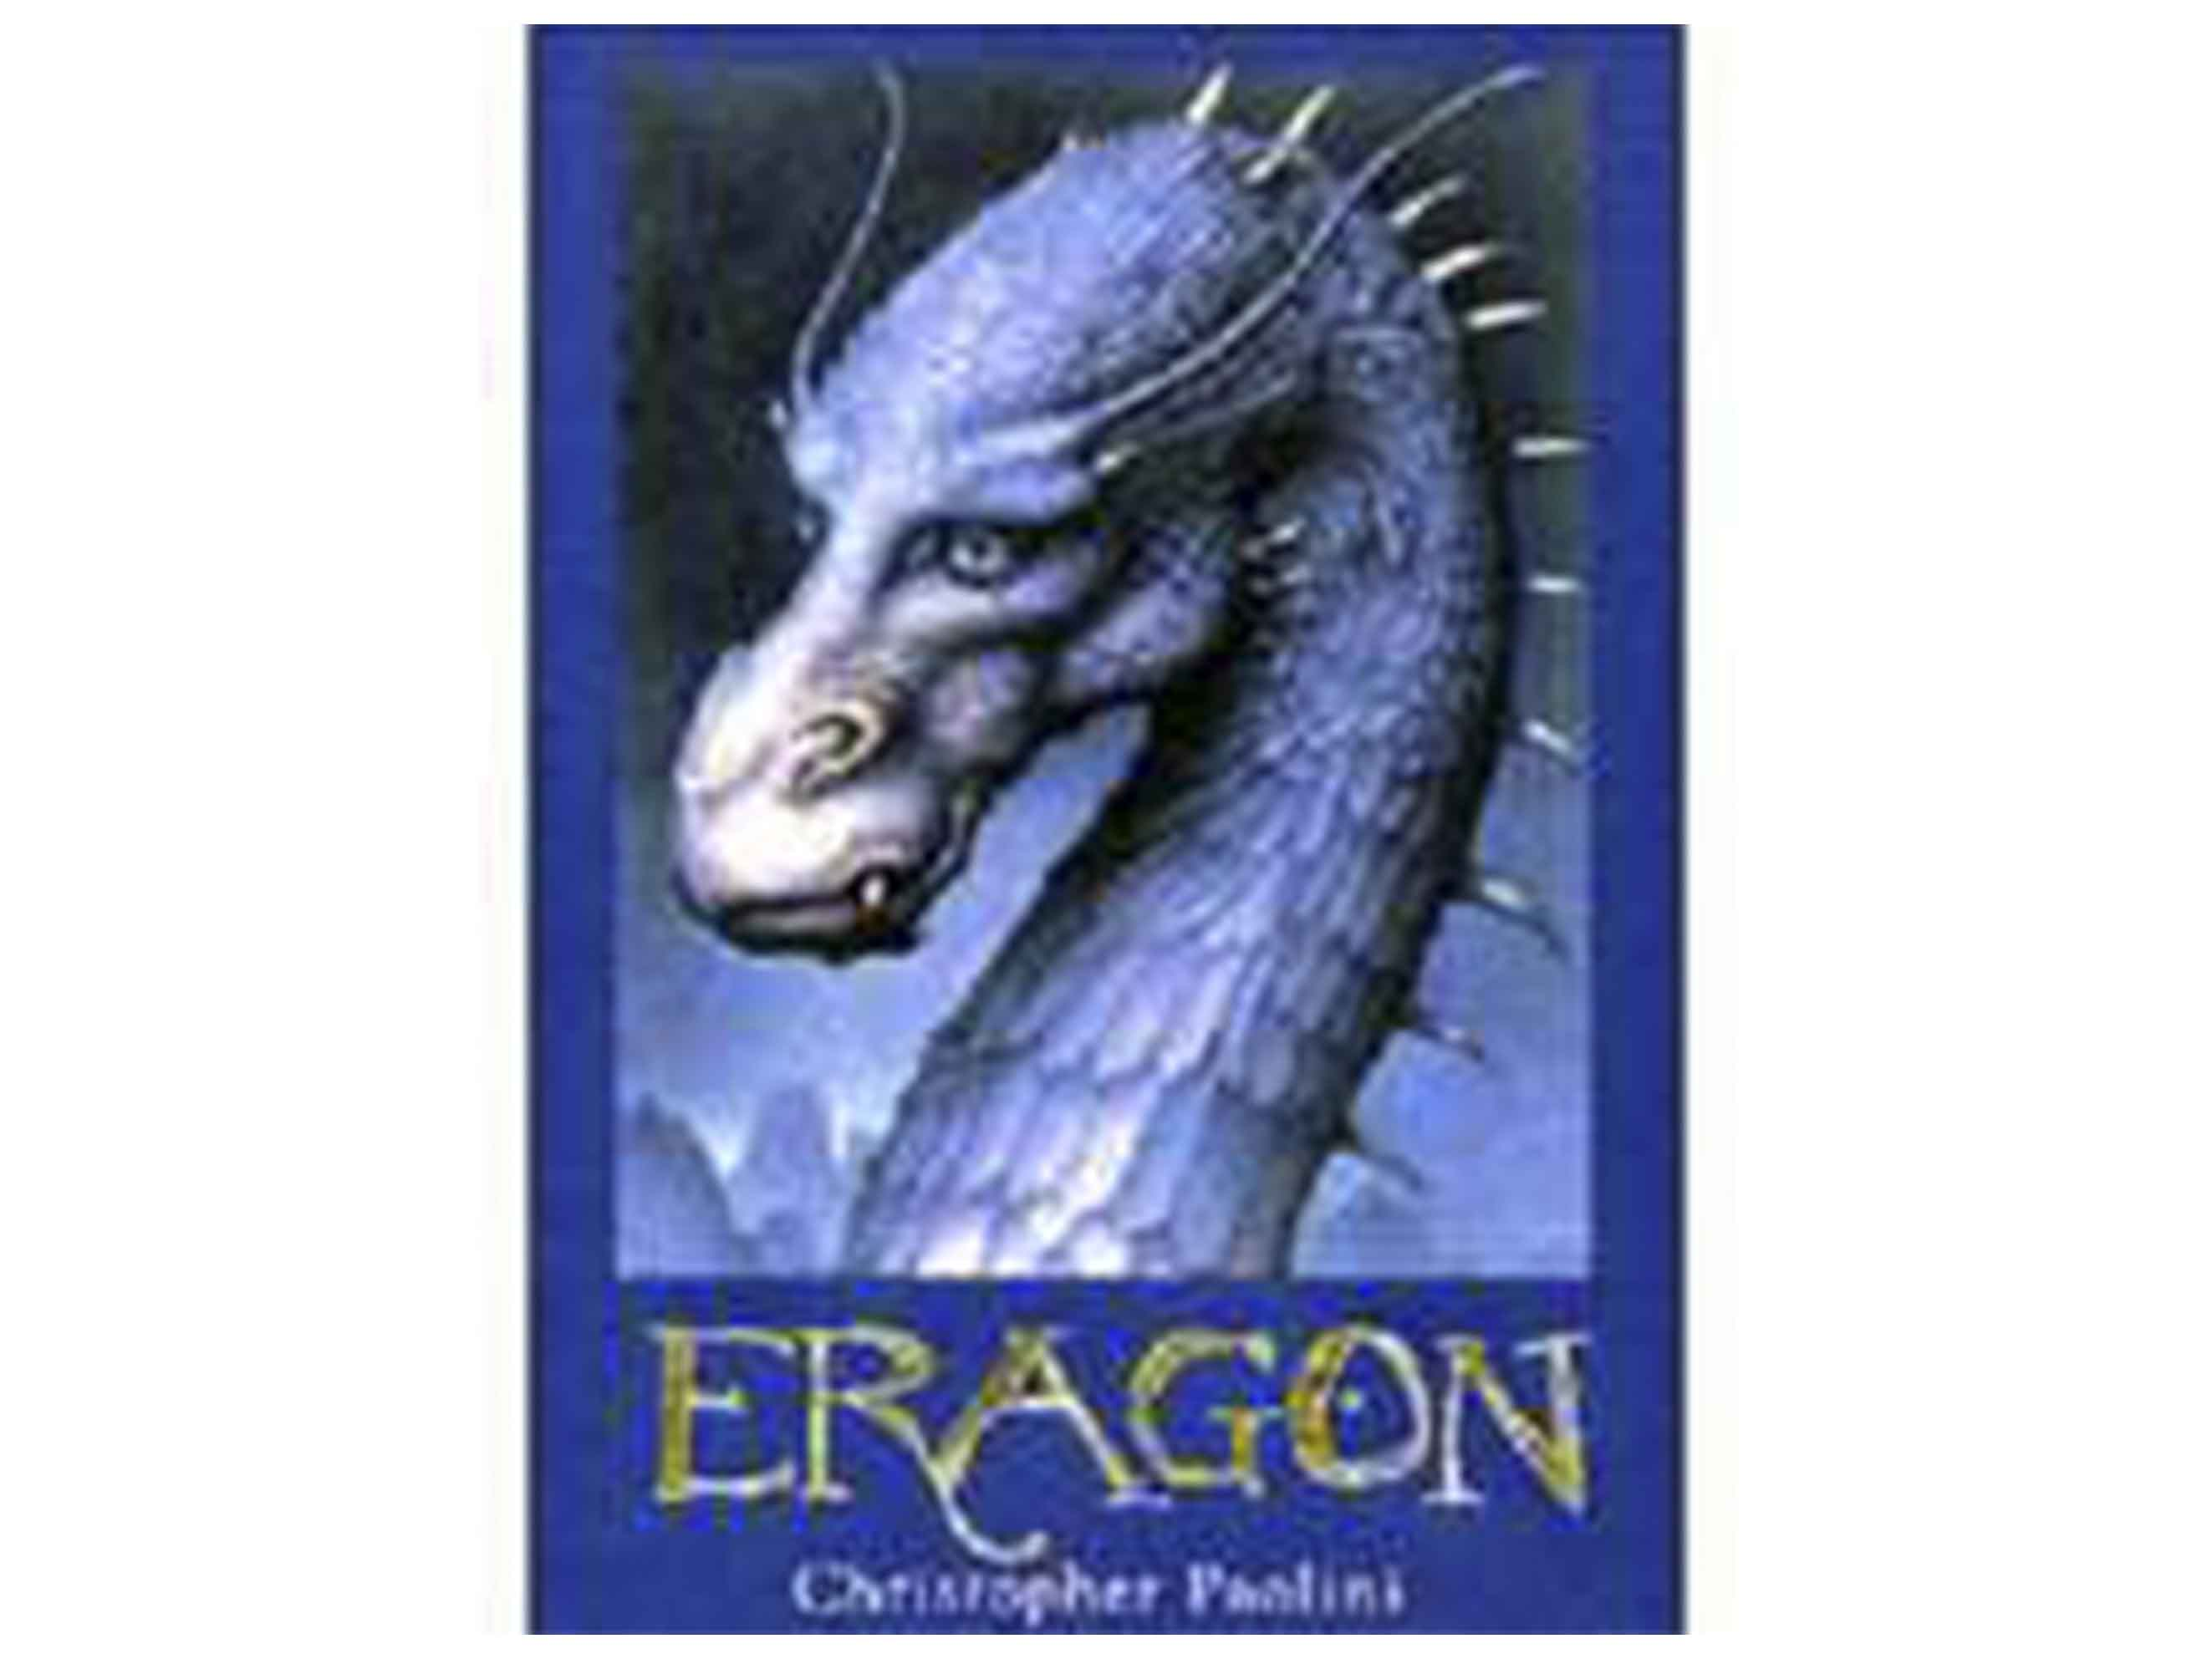 Christopher Paolini is the youngest best-selling author 20